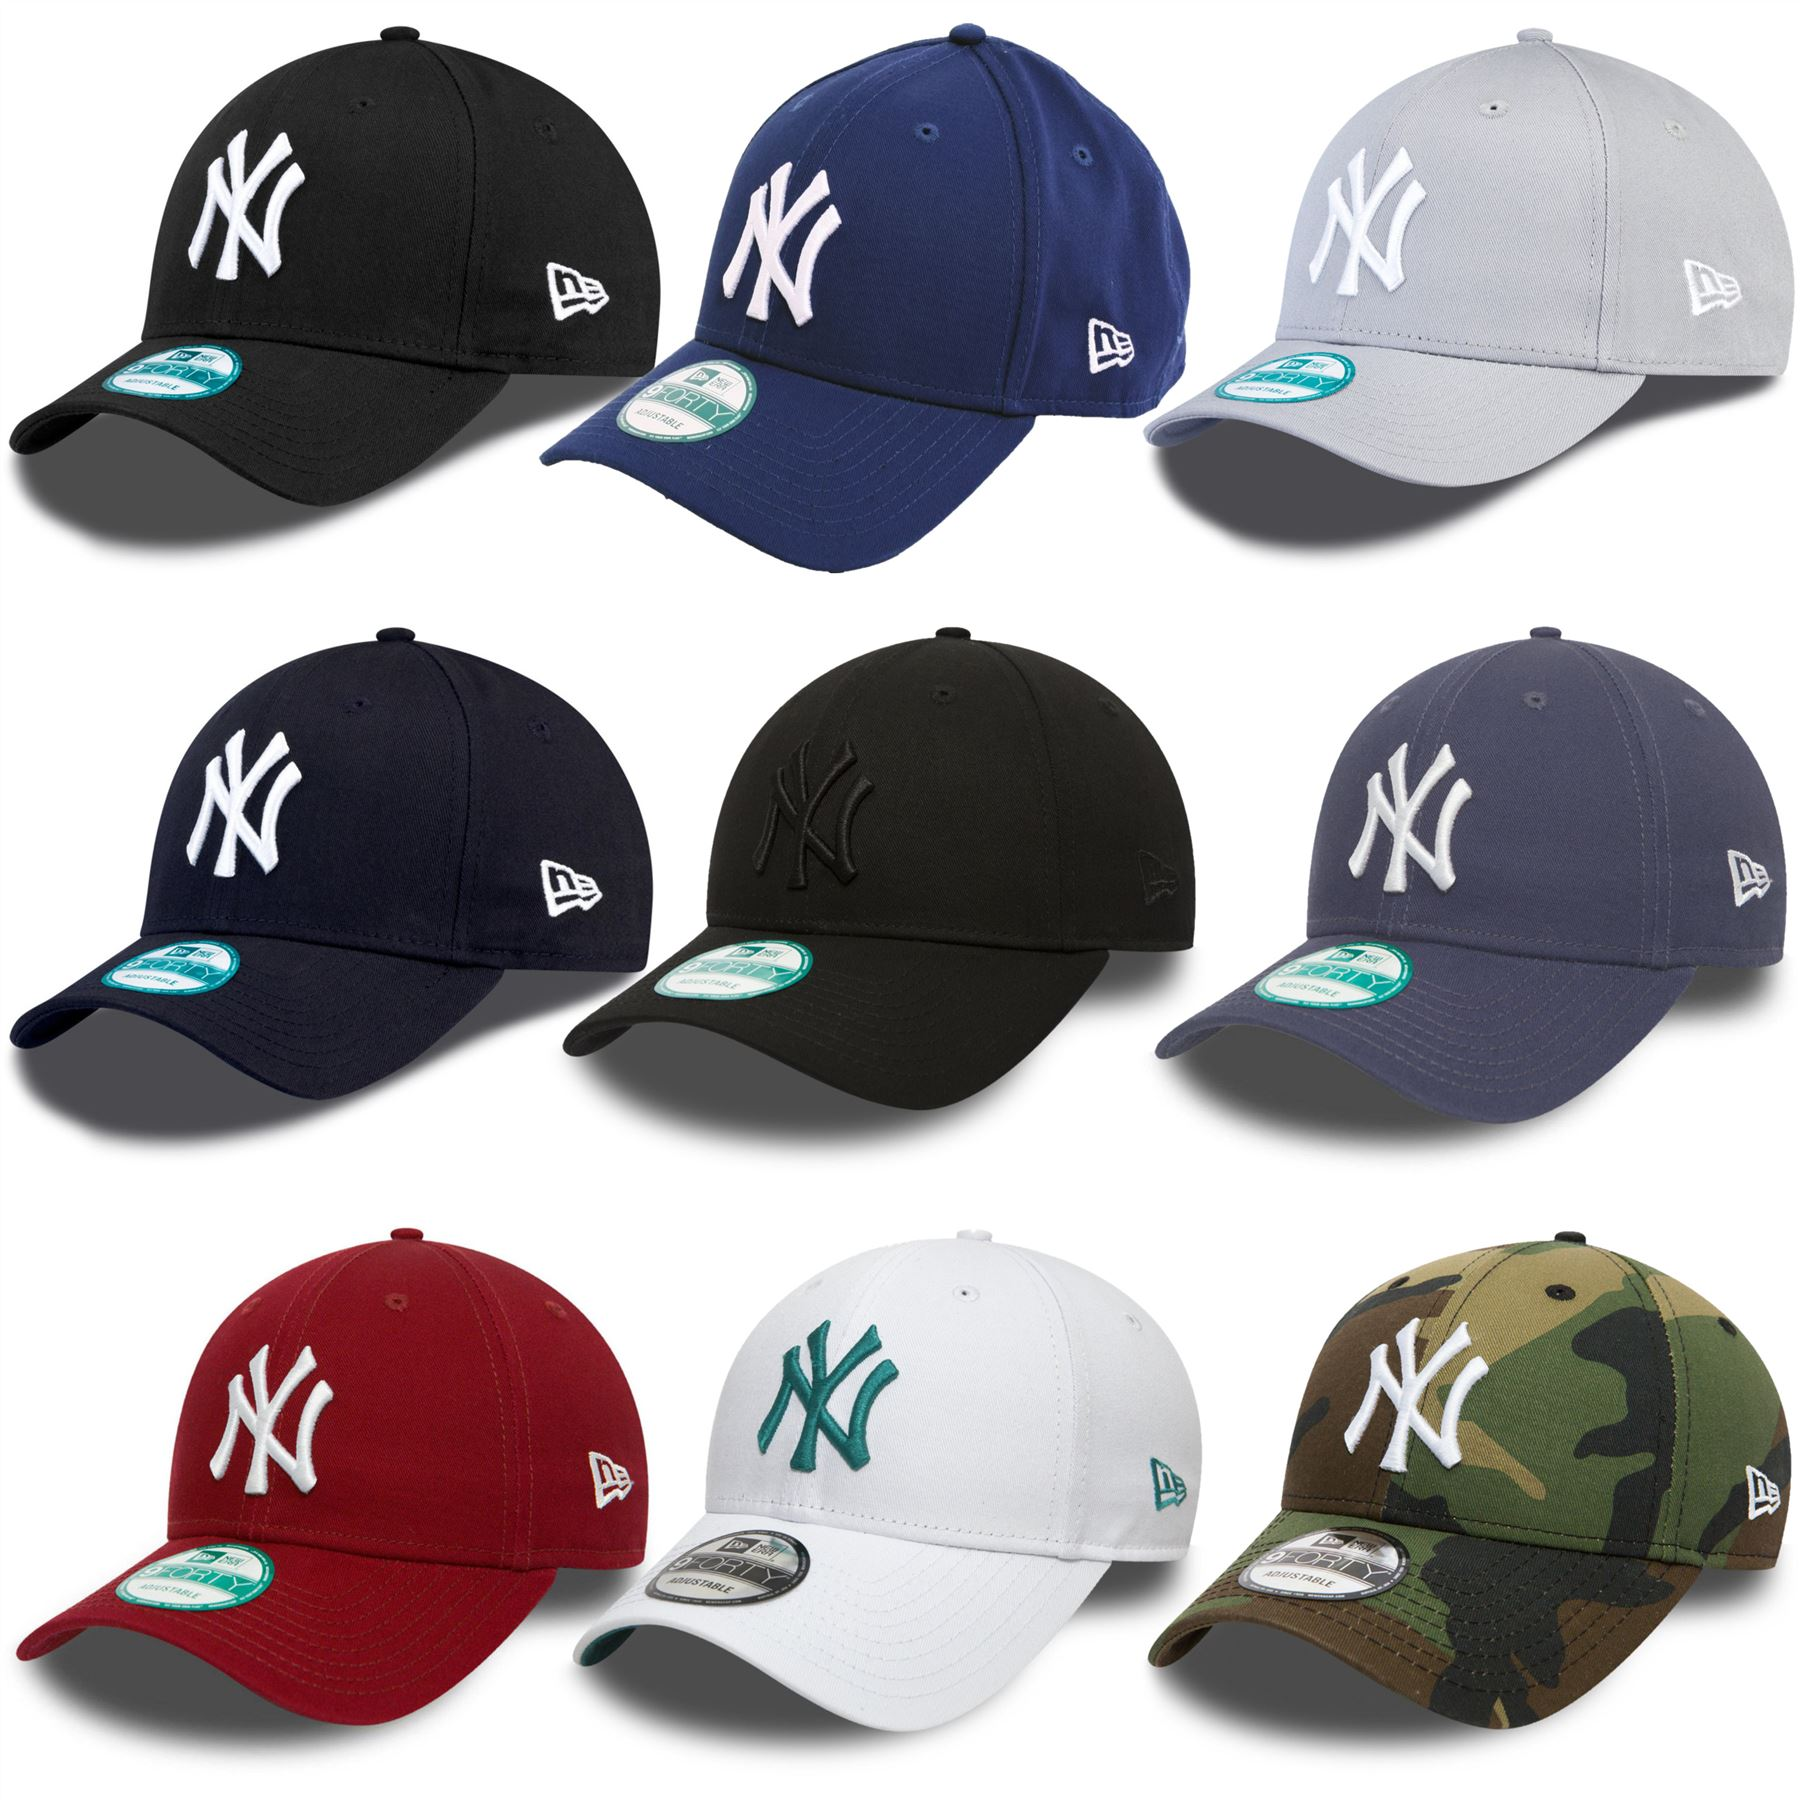 Details about New Era 9FORTY New York Yankees Adjustable Baseball Cap -  Black d99e8efd61e